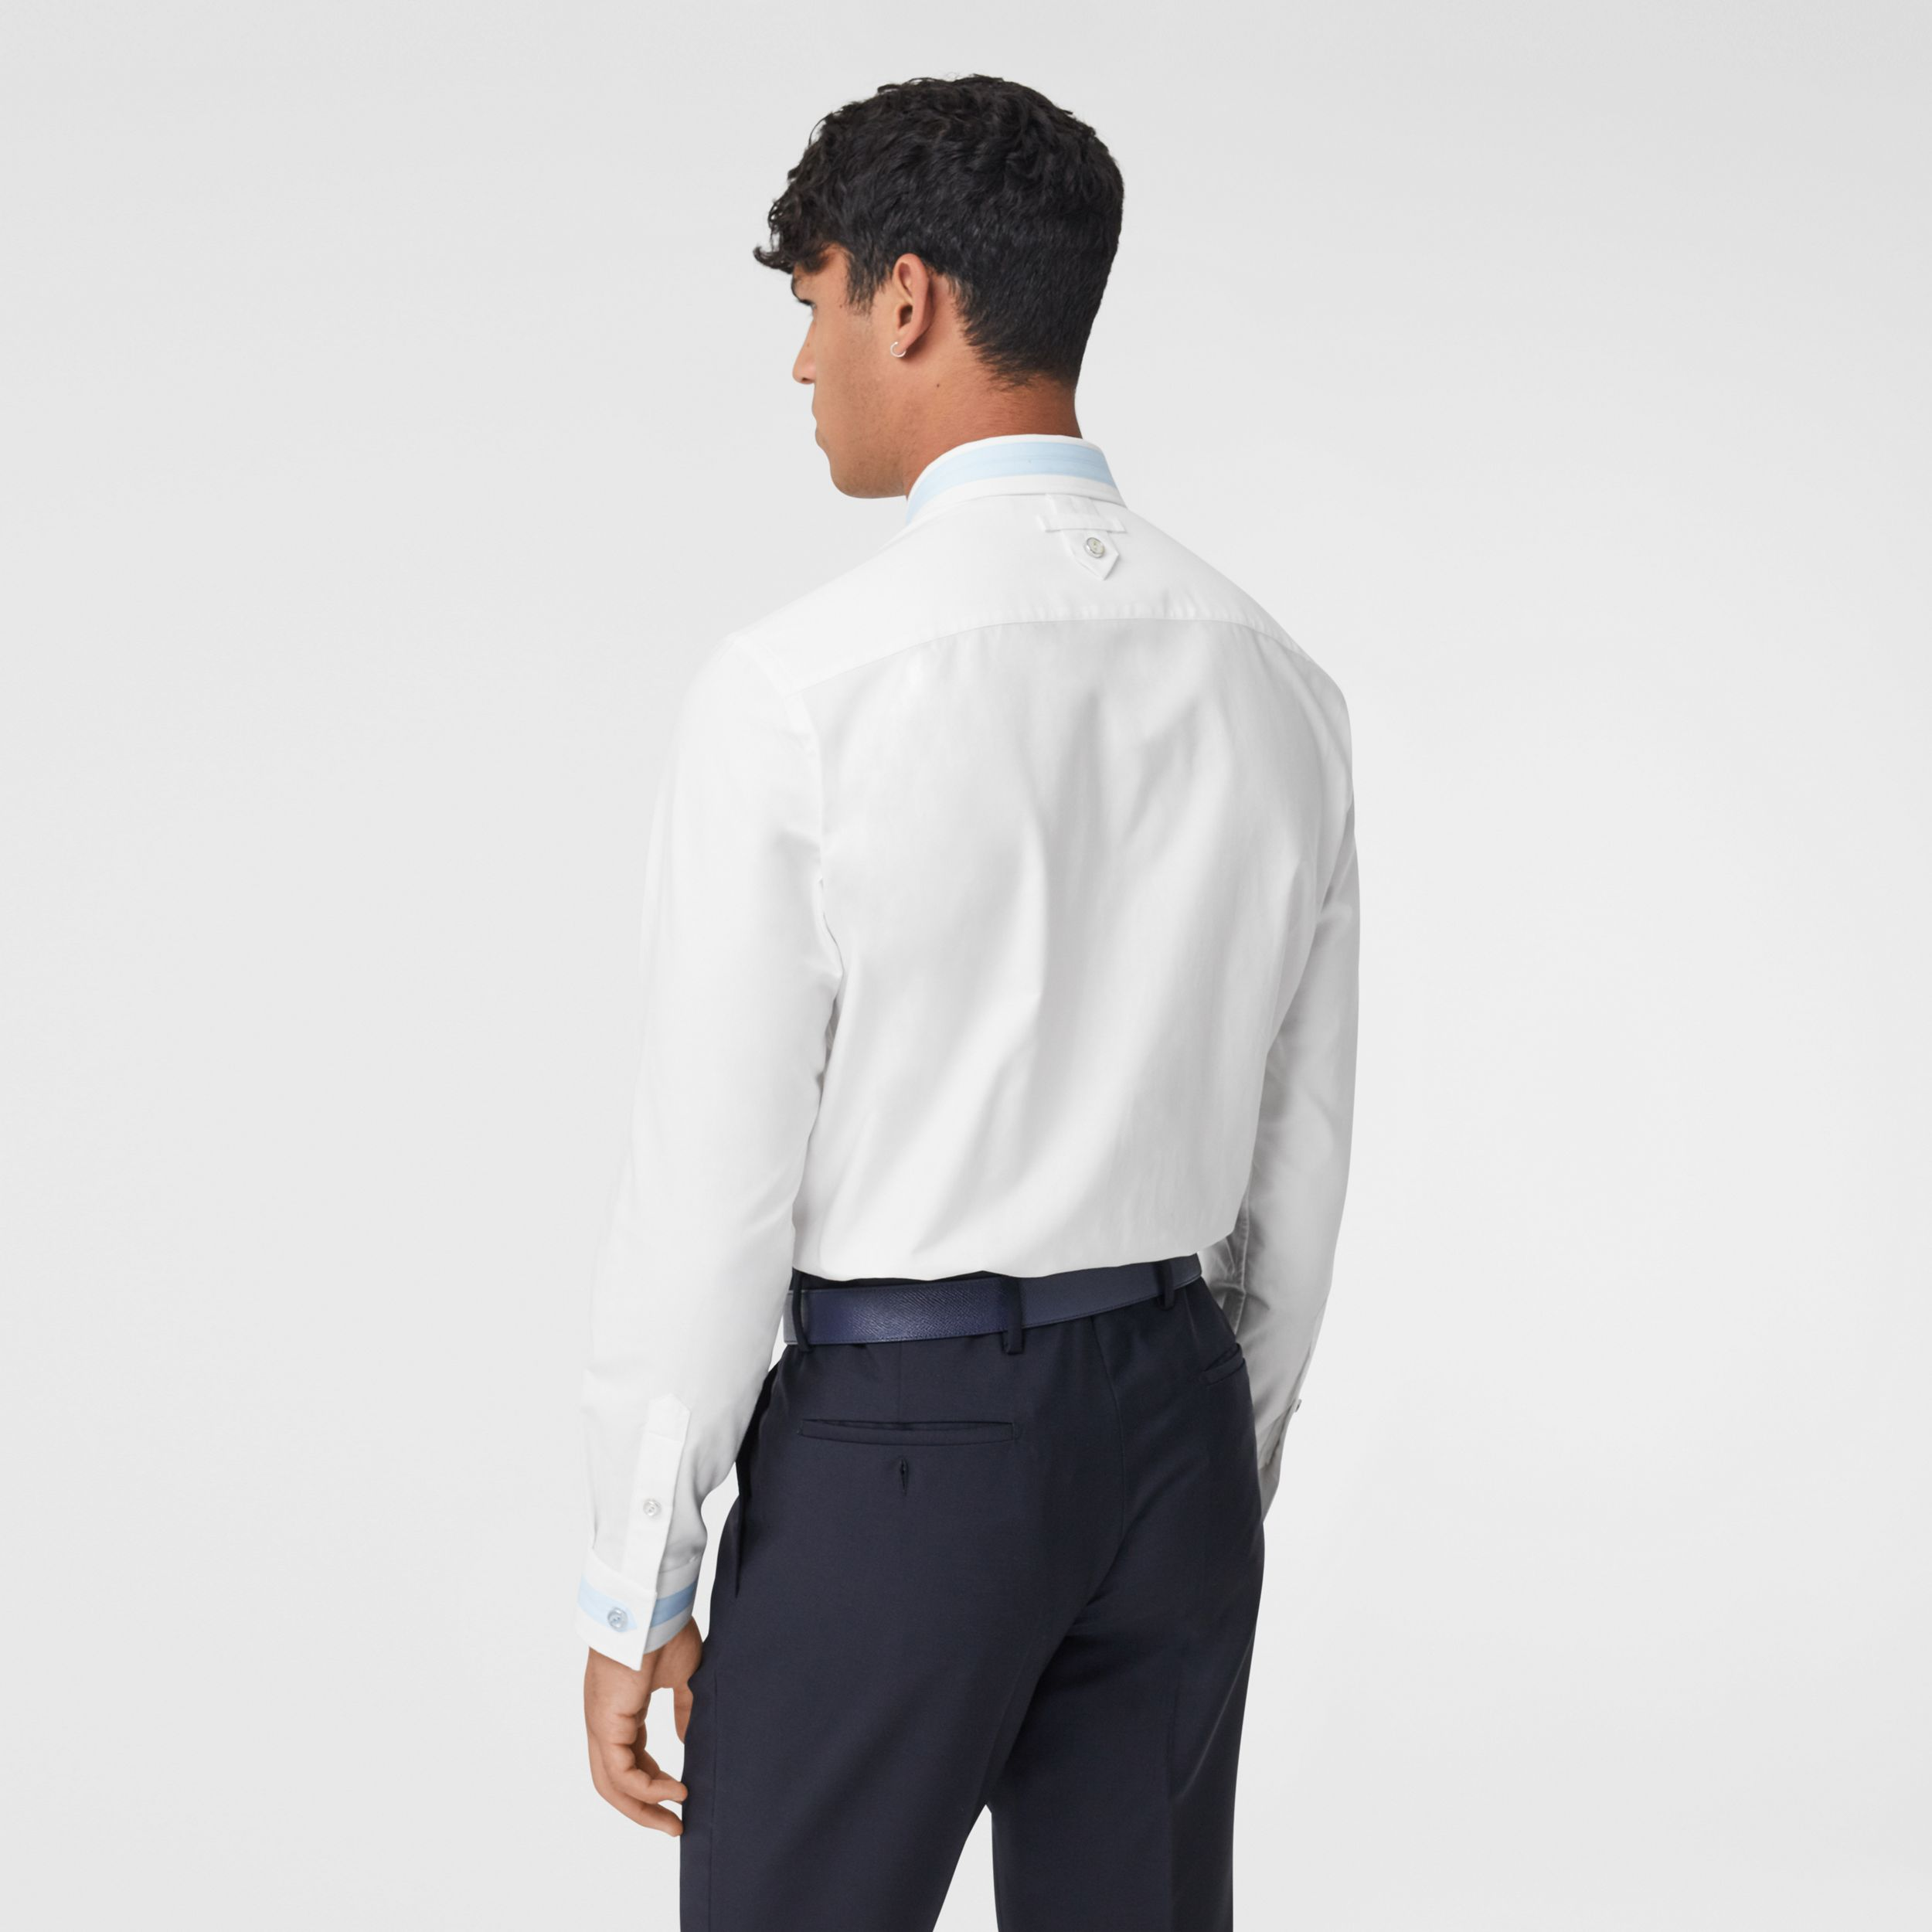 Slim Fit Cotton Oxford Shirt in White - Men | Burberry Australia - 3